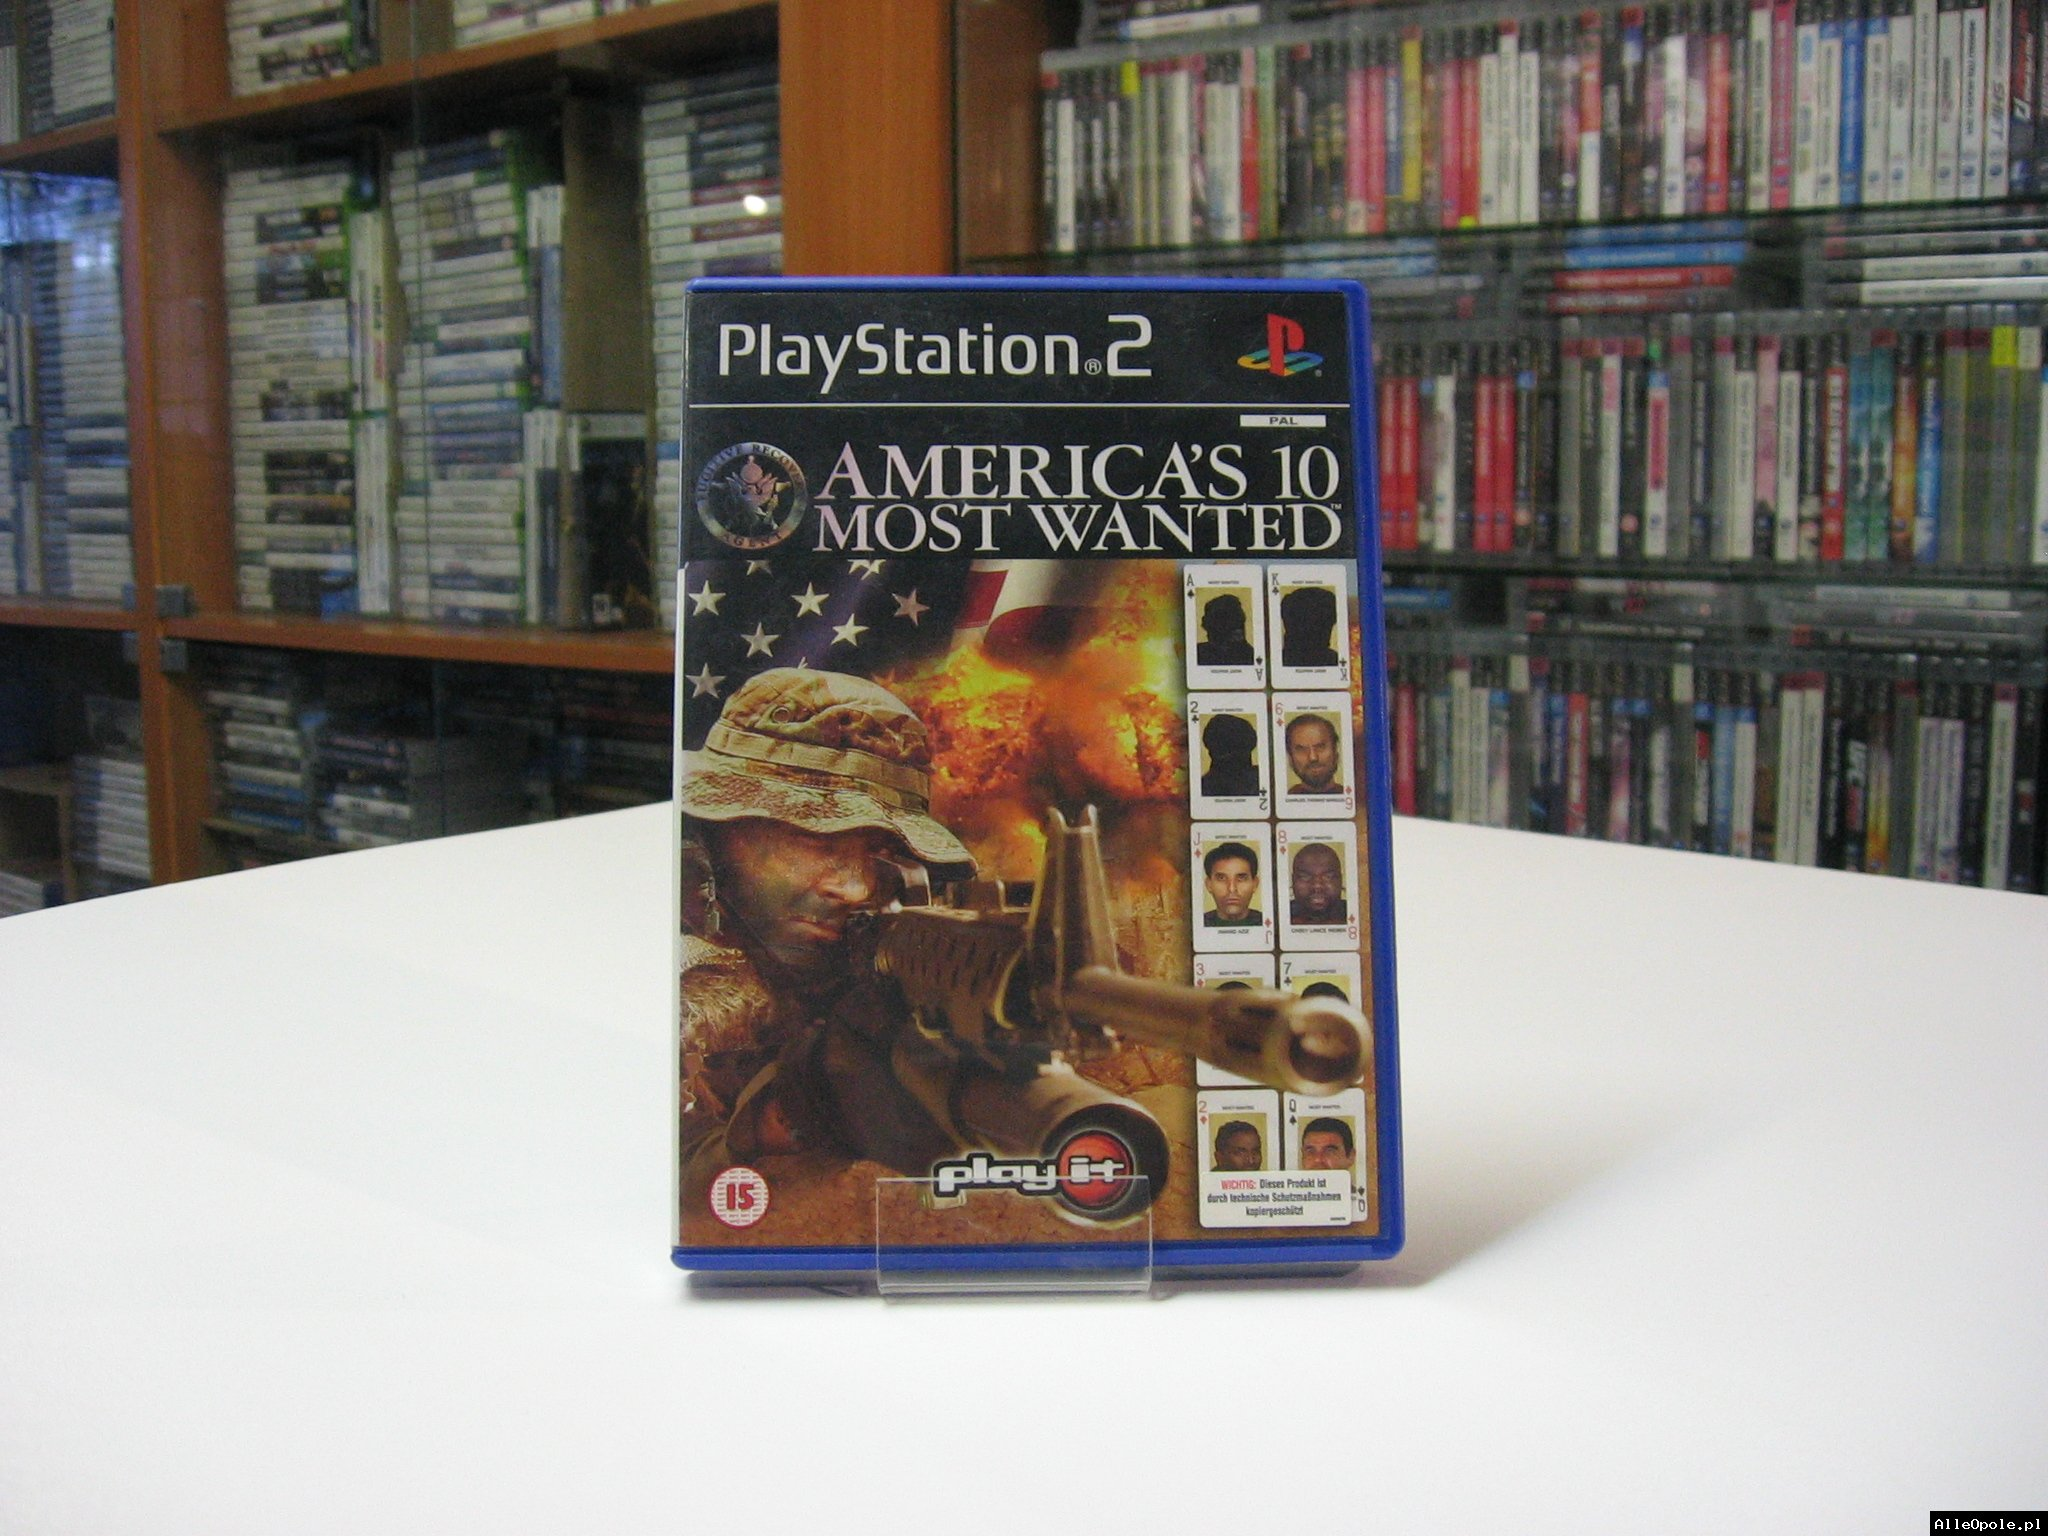 Americas 10 Most Wanted - GRA Ps2 - Opole 0590